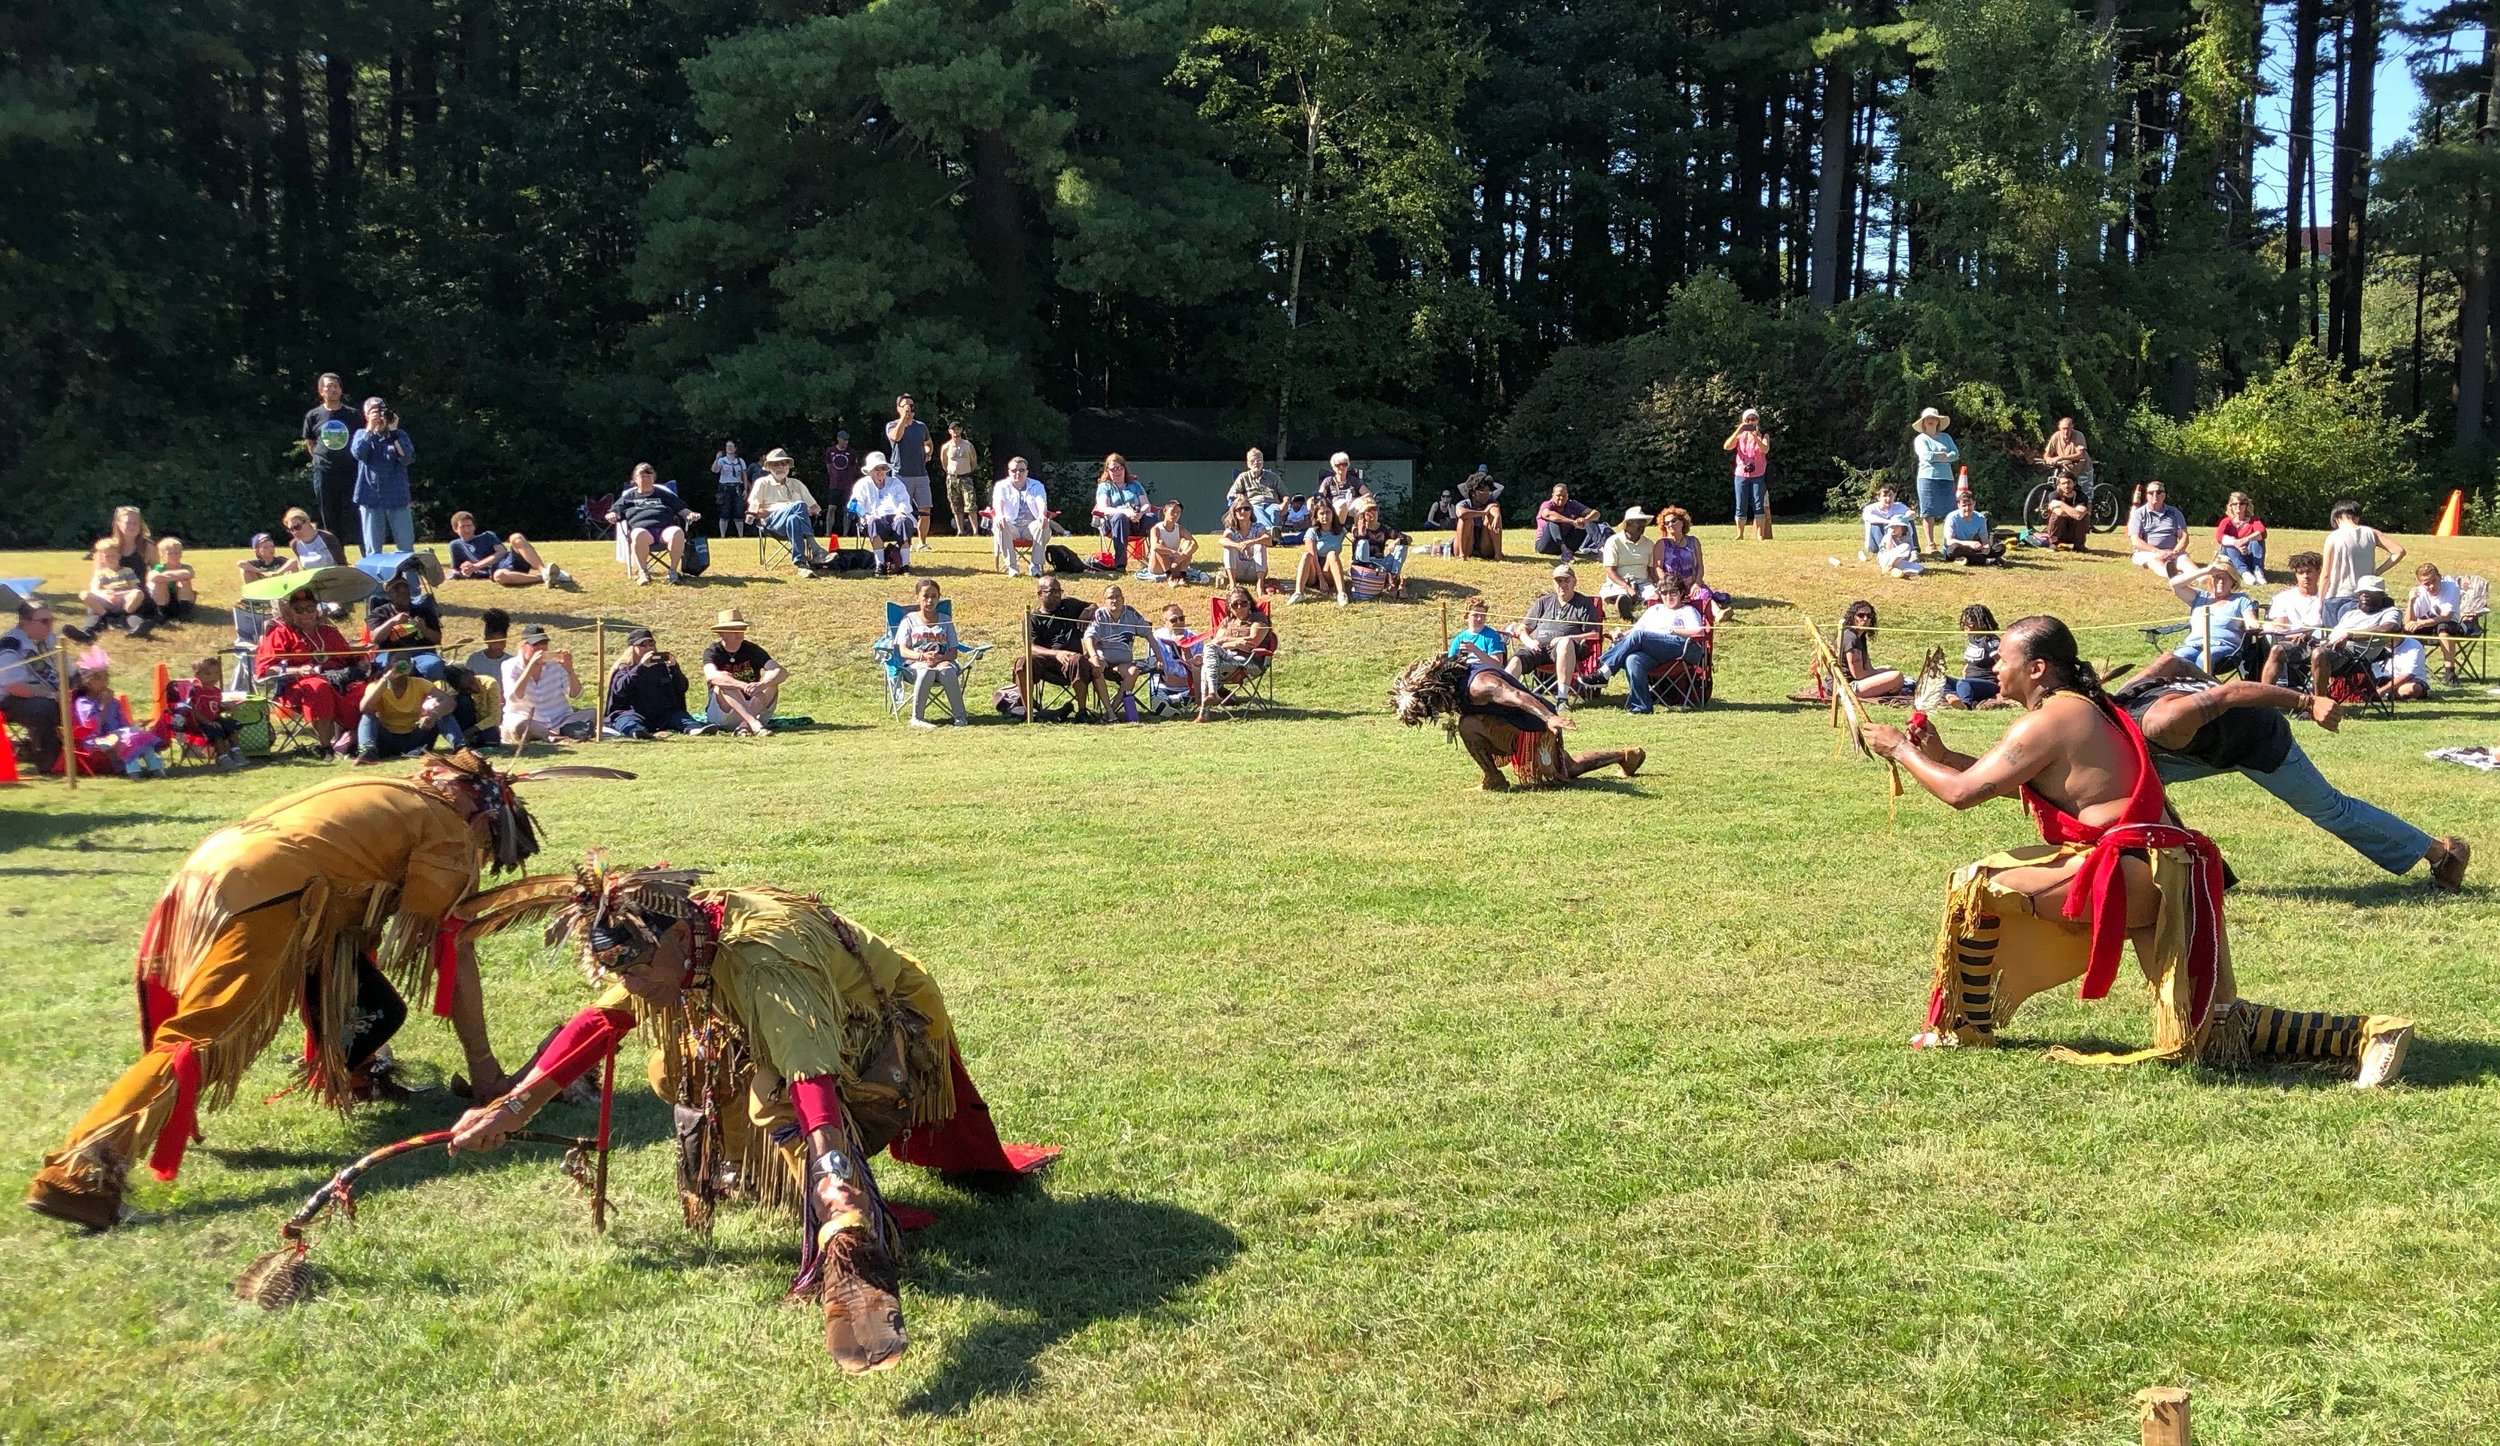 Dance at Pow Wow of Natick {Mass.) Praying Indians Sept. 28    — Photo by Tom Paine